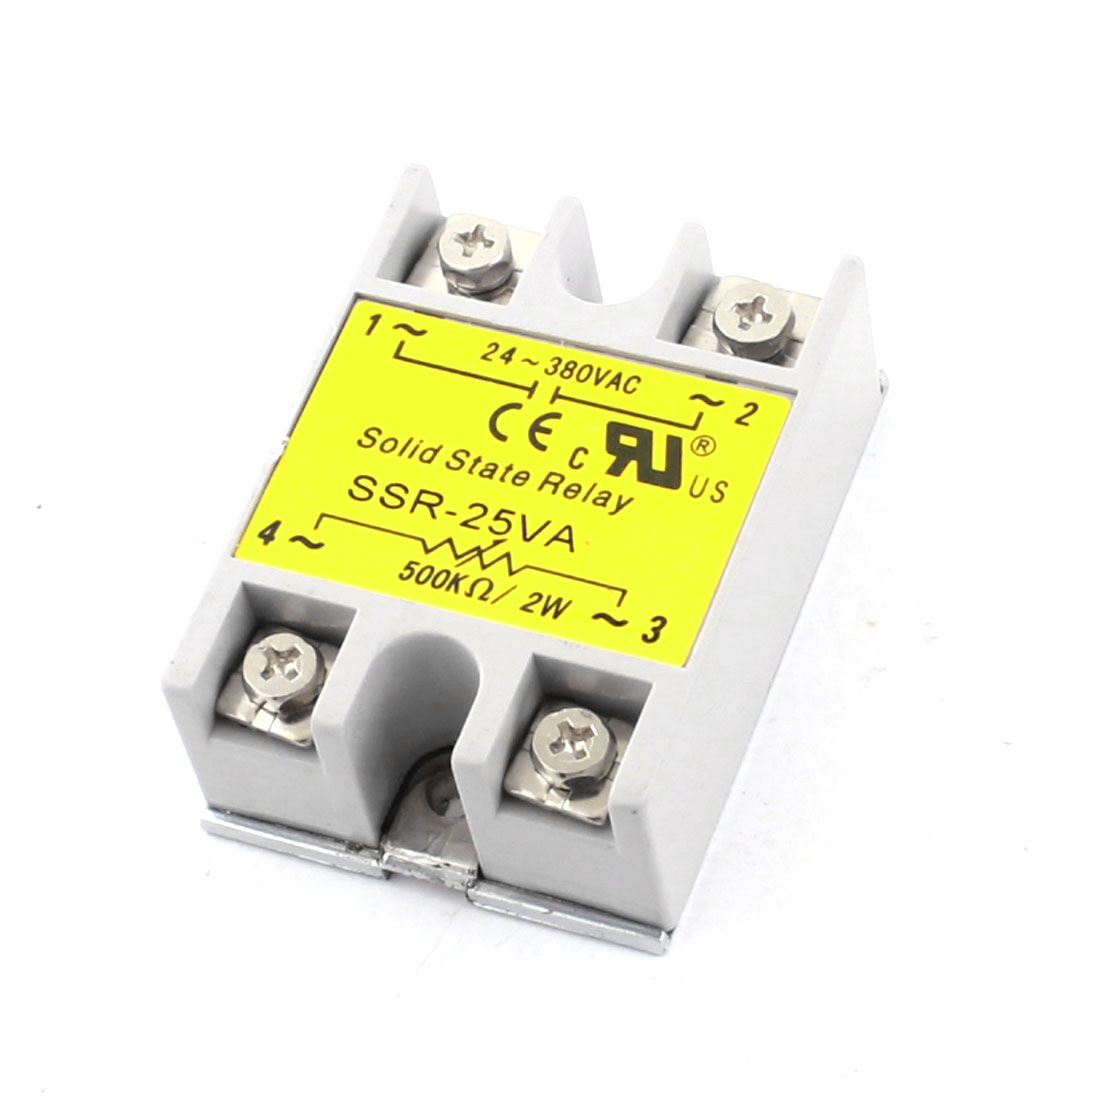 SSR-25VA AC24-380V Output 500K Ohm/2W Input 25VA Metal Base Single Phase Resistance Type Adjustable Solid State Relay